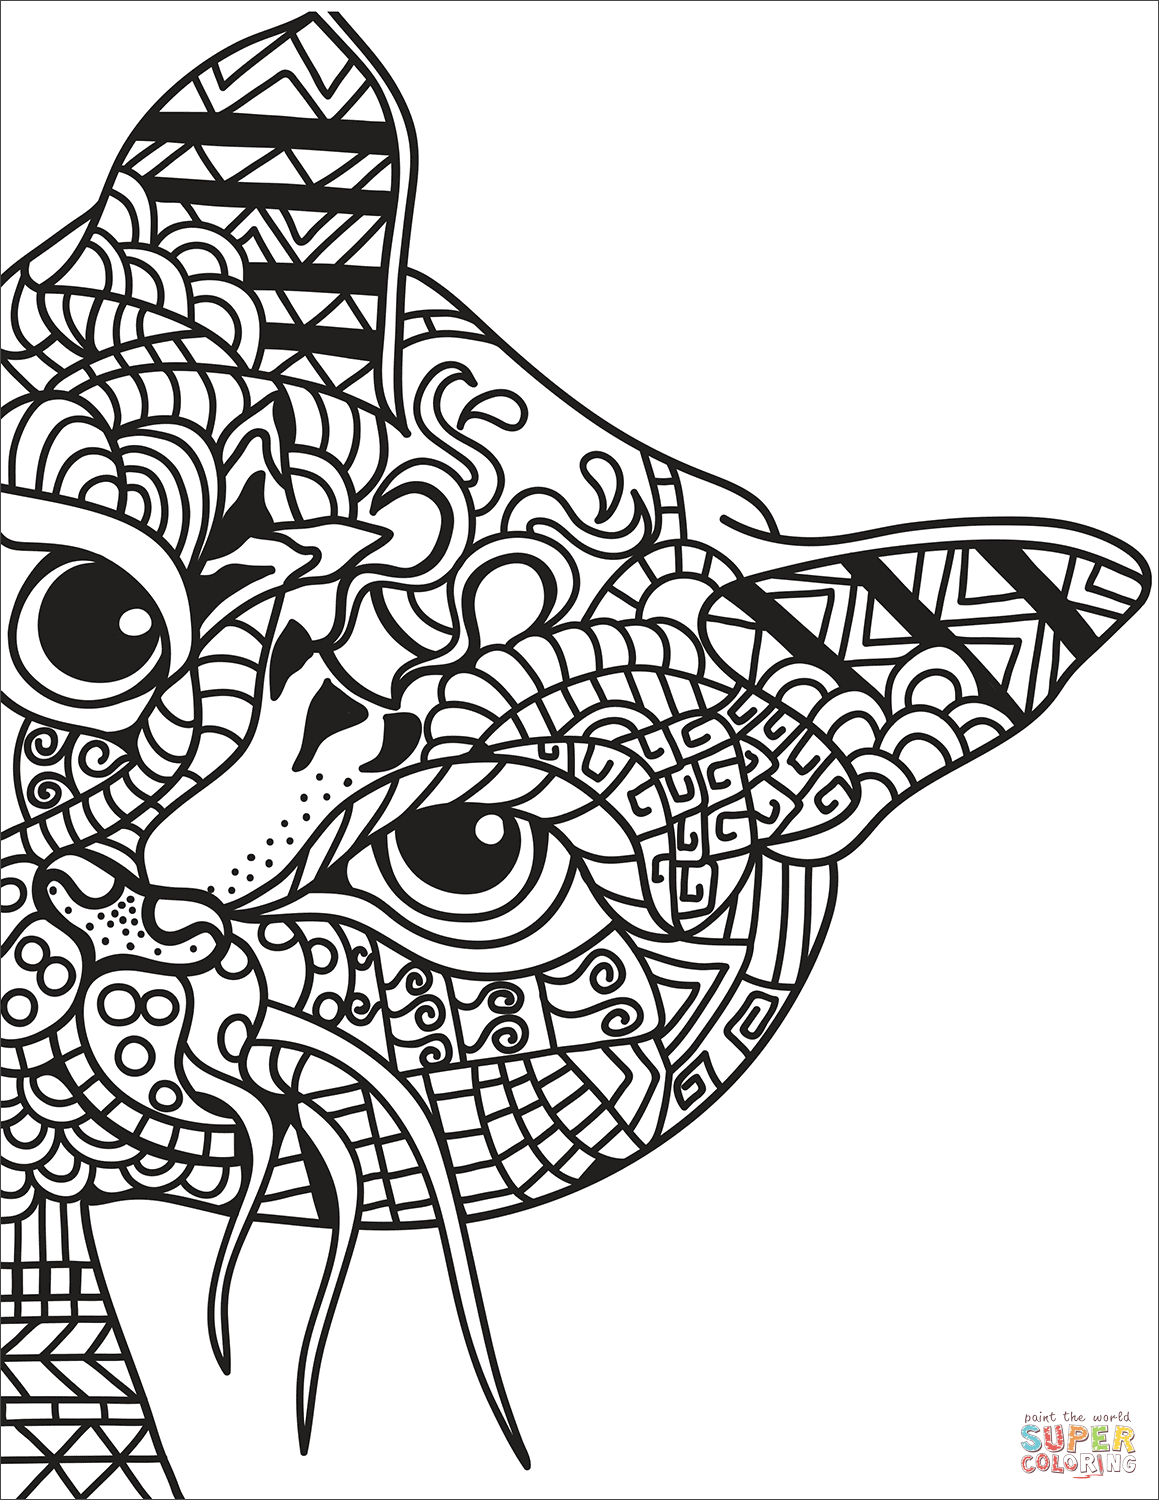 Zentangle Cat Coloring Page Free Printable Coloring Pages Cat Coloring Page Dog Coloring Page Cat Coloring Book [ 1500 x 1159 Pixel ]